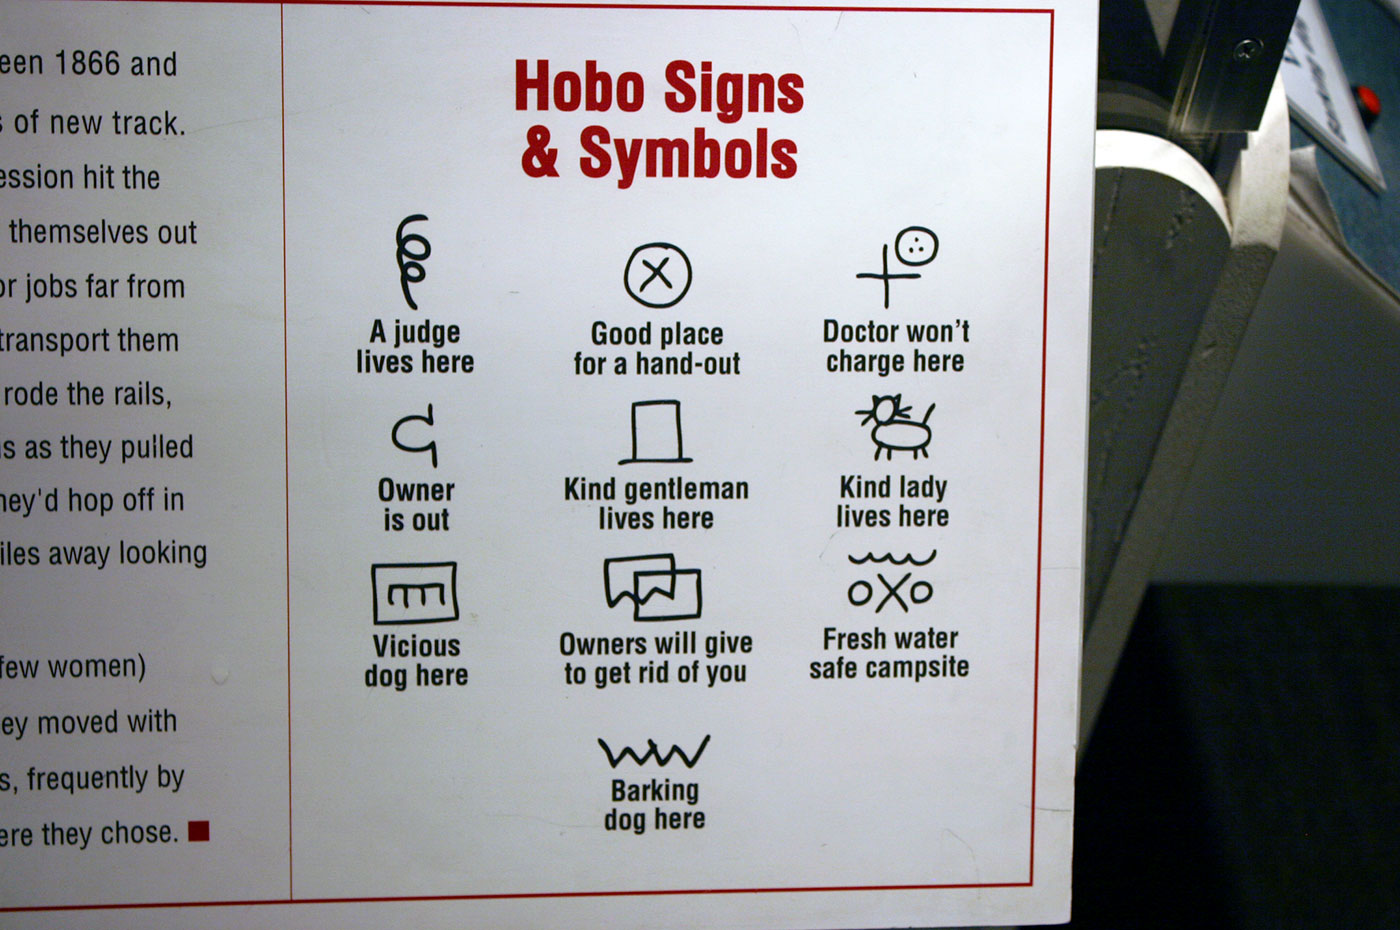 Hobo signs and symbols